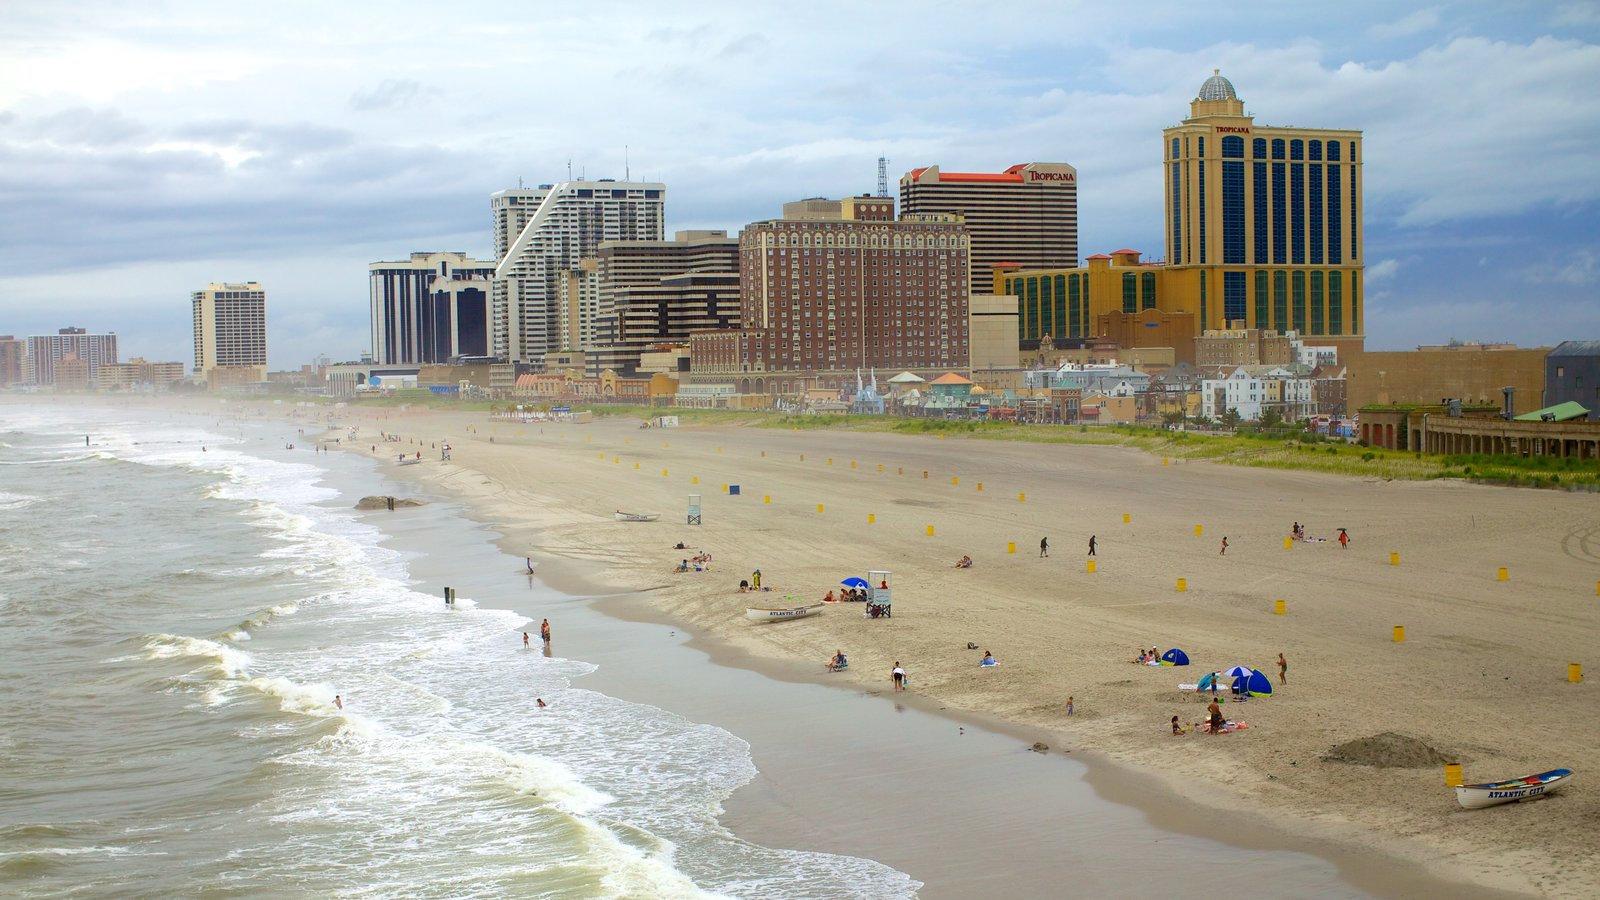 Atlantic City Boardwalk Which Includes Swimming A Coastal Town And Beach